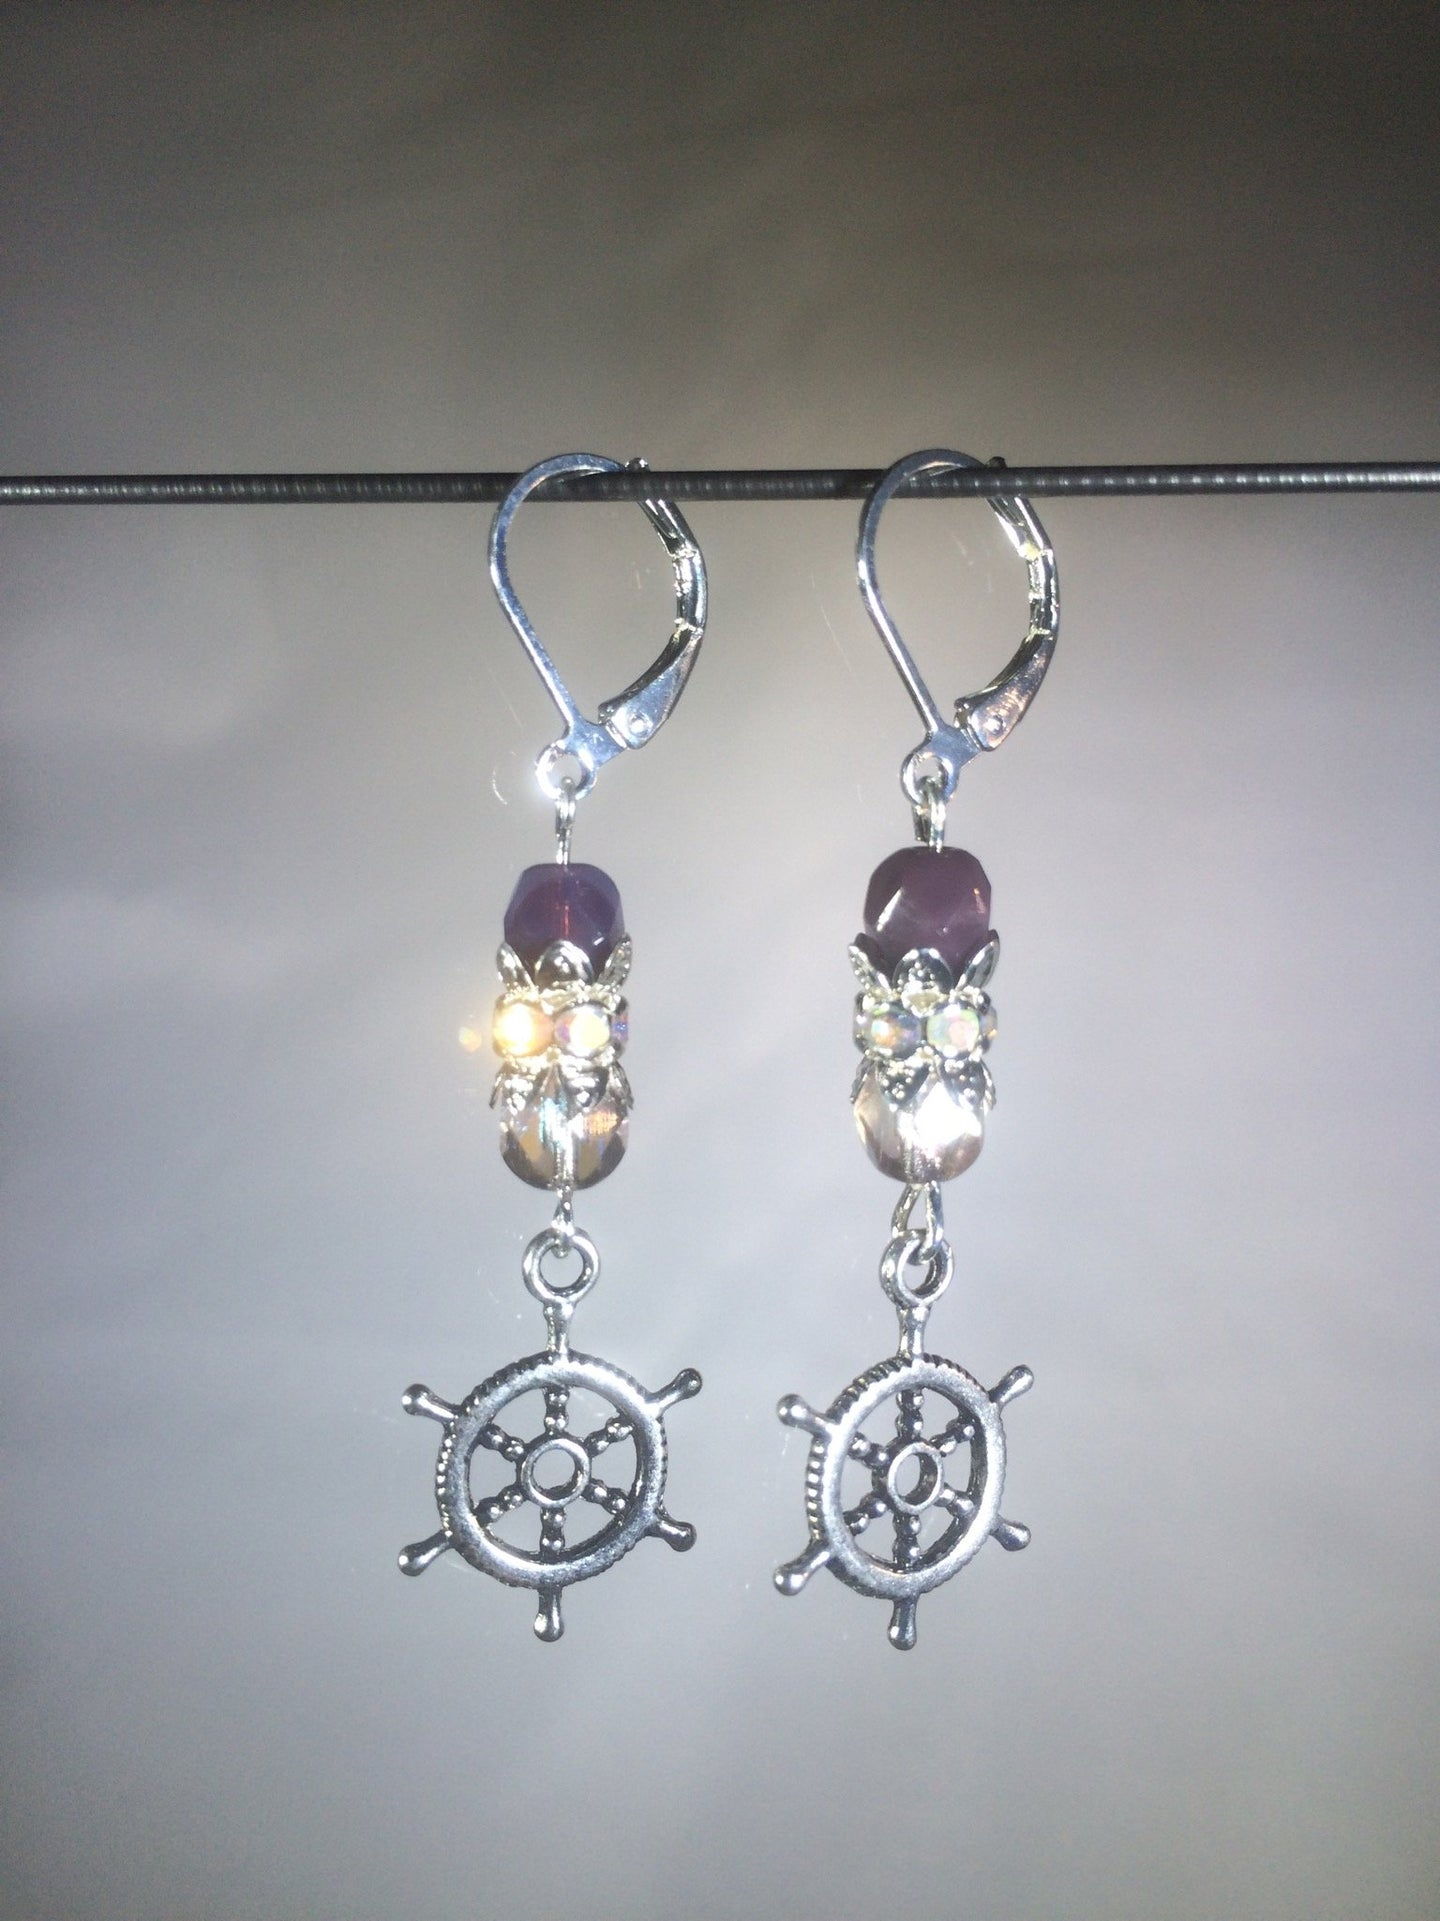 Leverback earrings with metal ship's wheel charms, purple colored and faceted glass beads, and a faceted crystal cluster.